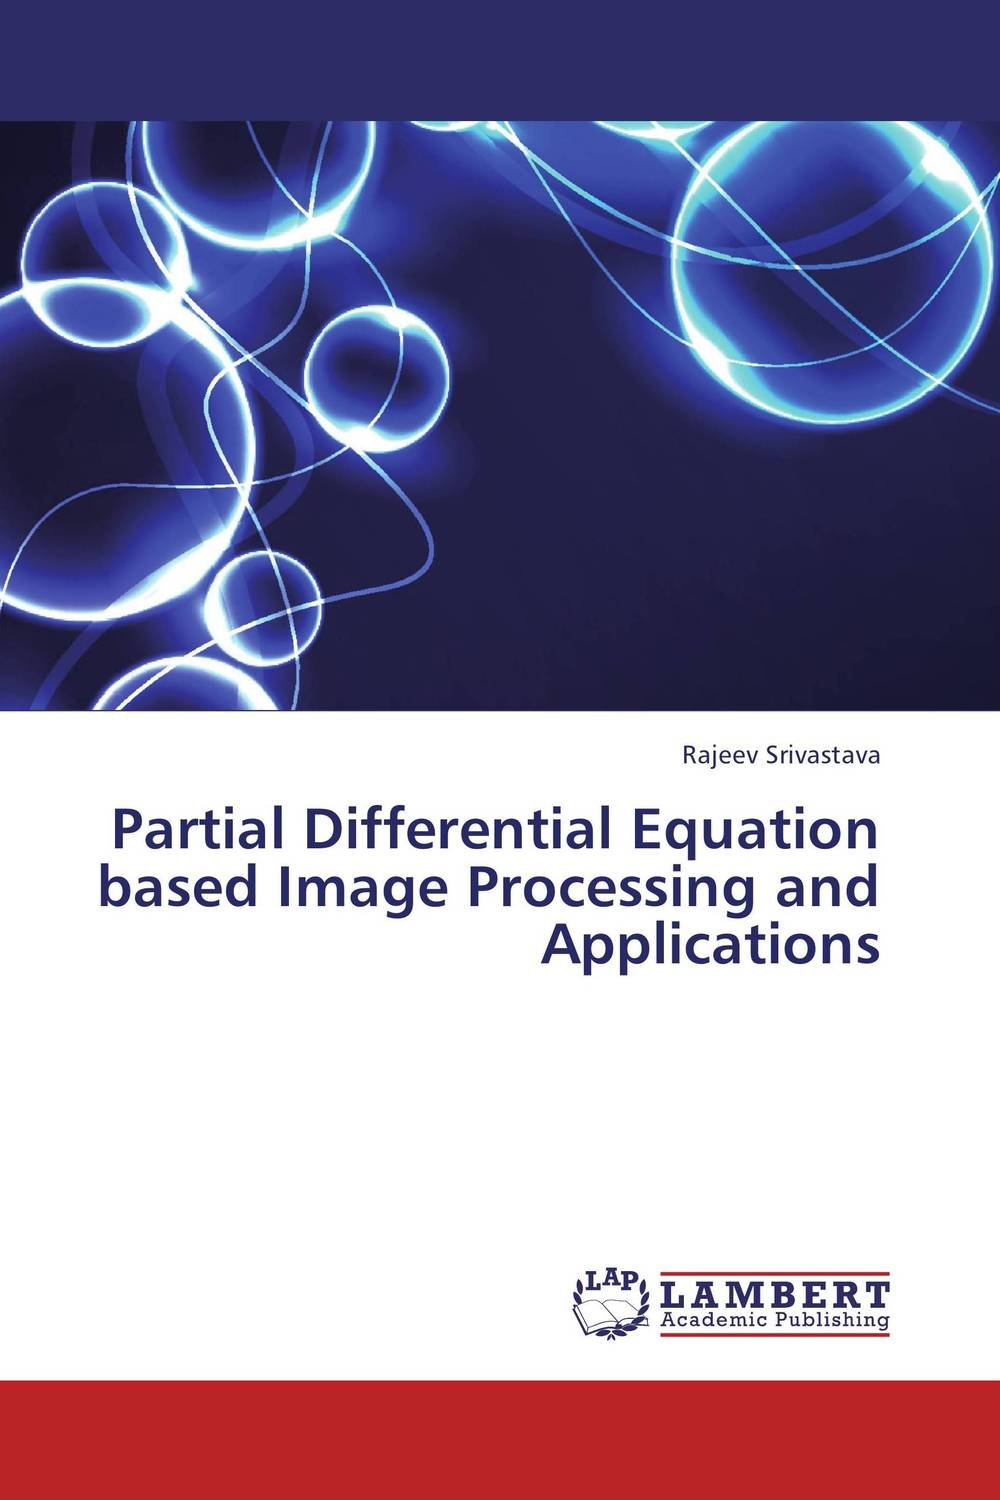 все цены на Partial Differential Equation based Image Processing and Applications